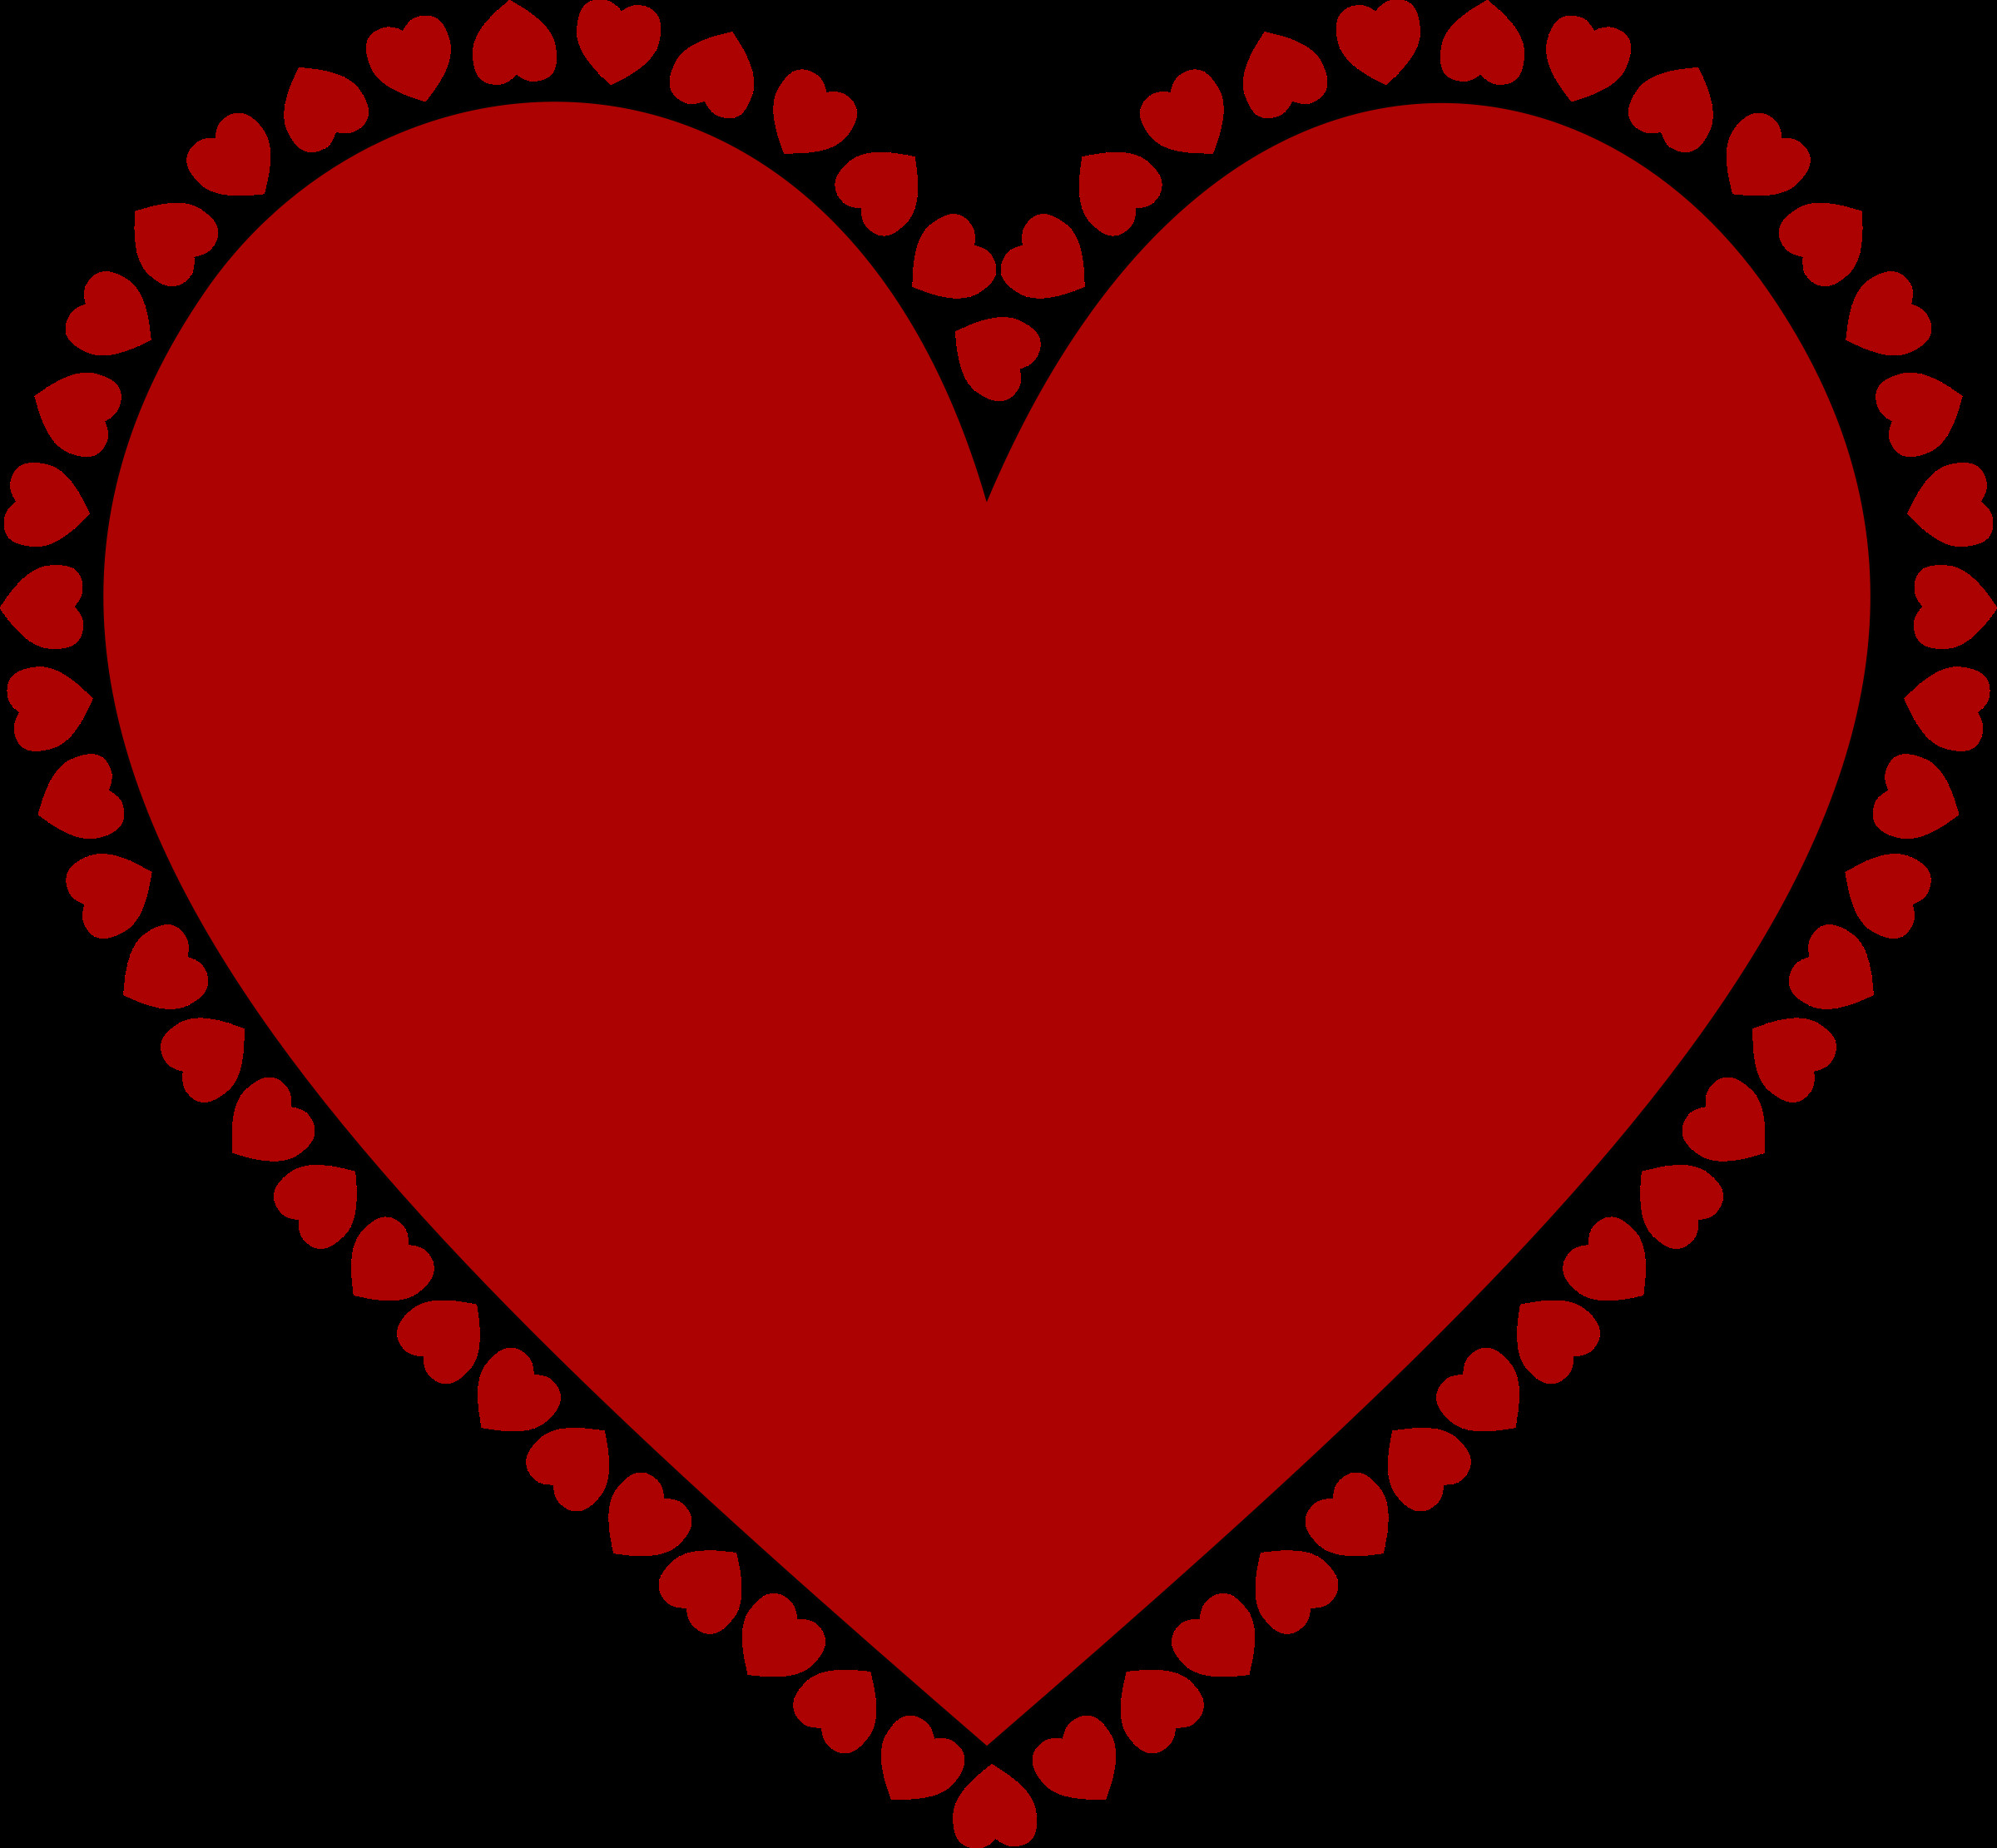 clipart frame of hearts